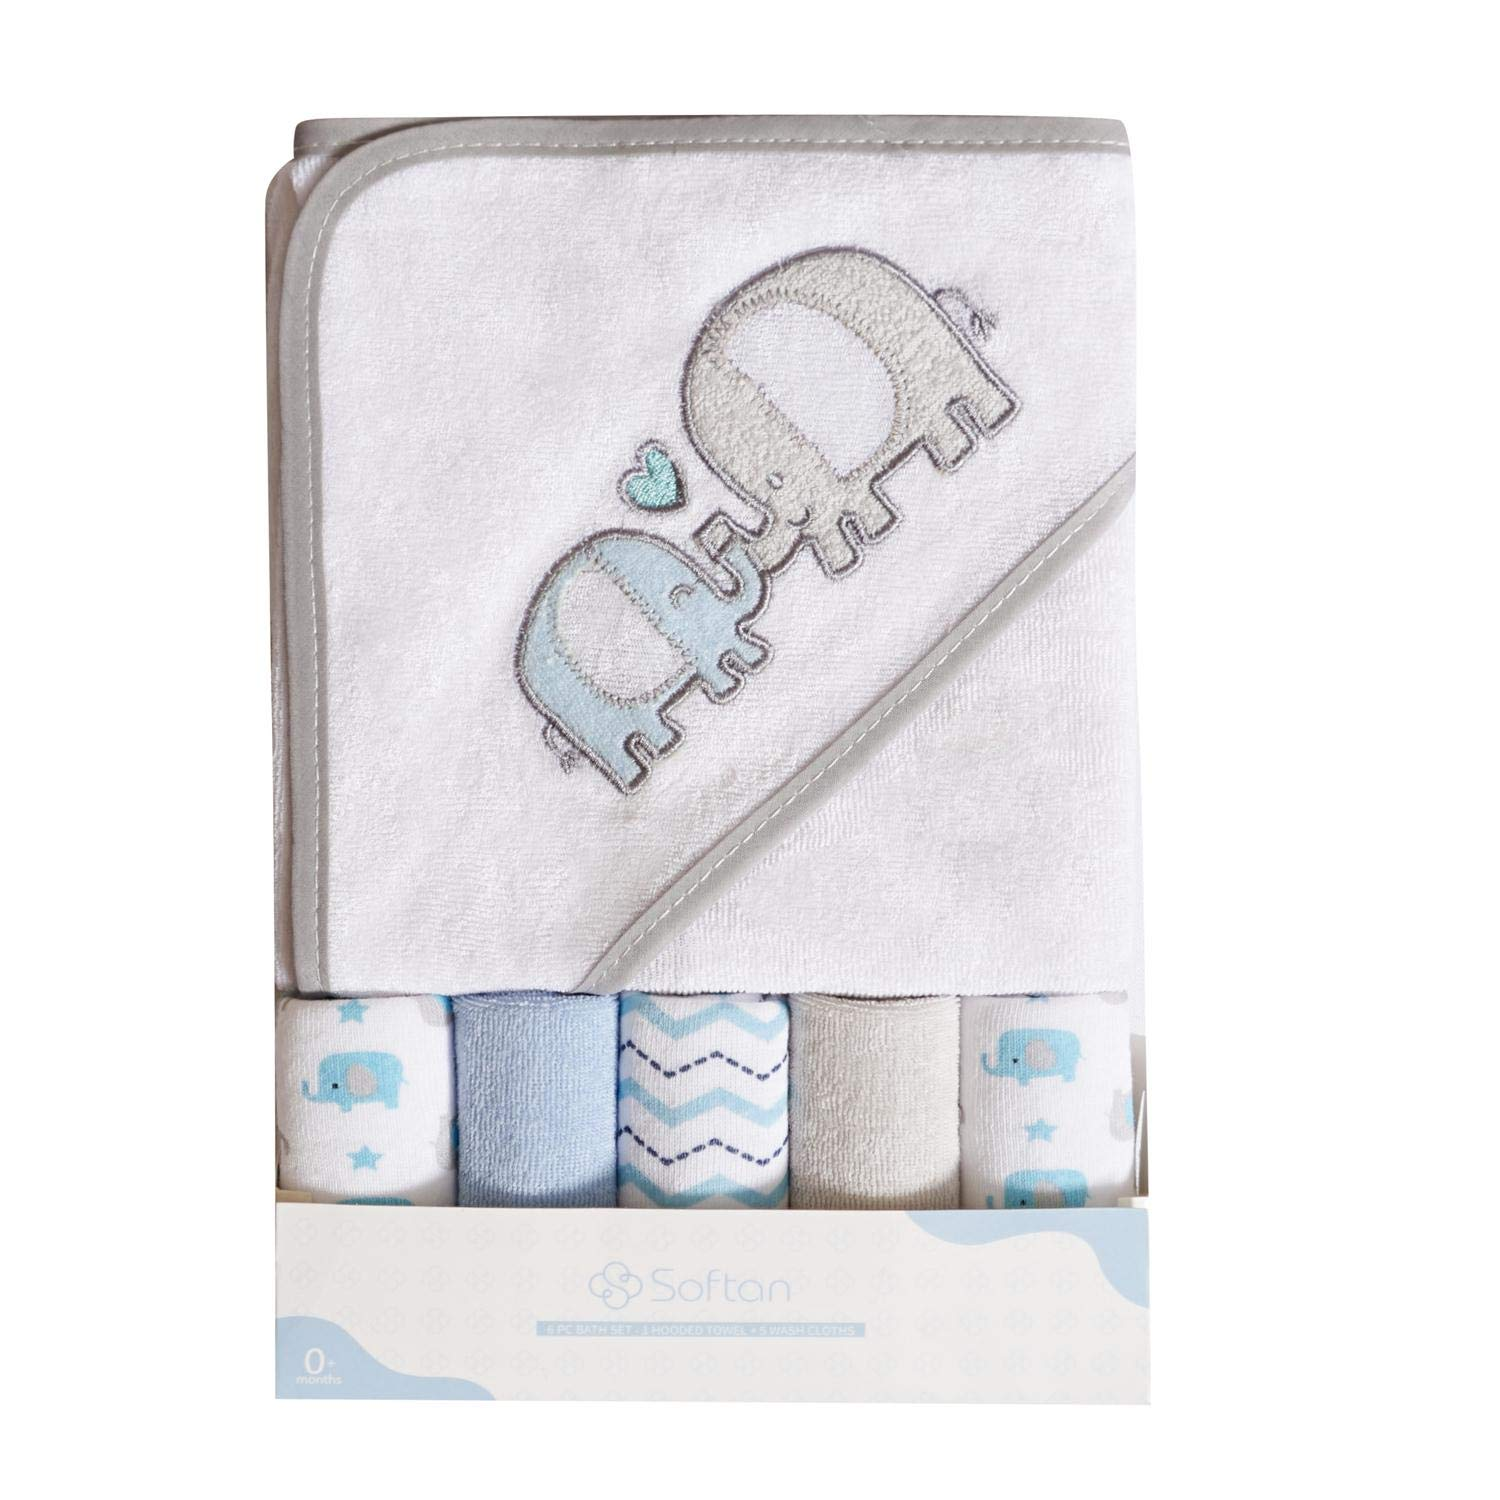 Softan Baby Hooded Bath Towel and Washcloths, Extra Soft and Ultra Absorbent, 6 Pack Gift for Newborn and Infants, Elephant